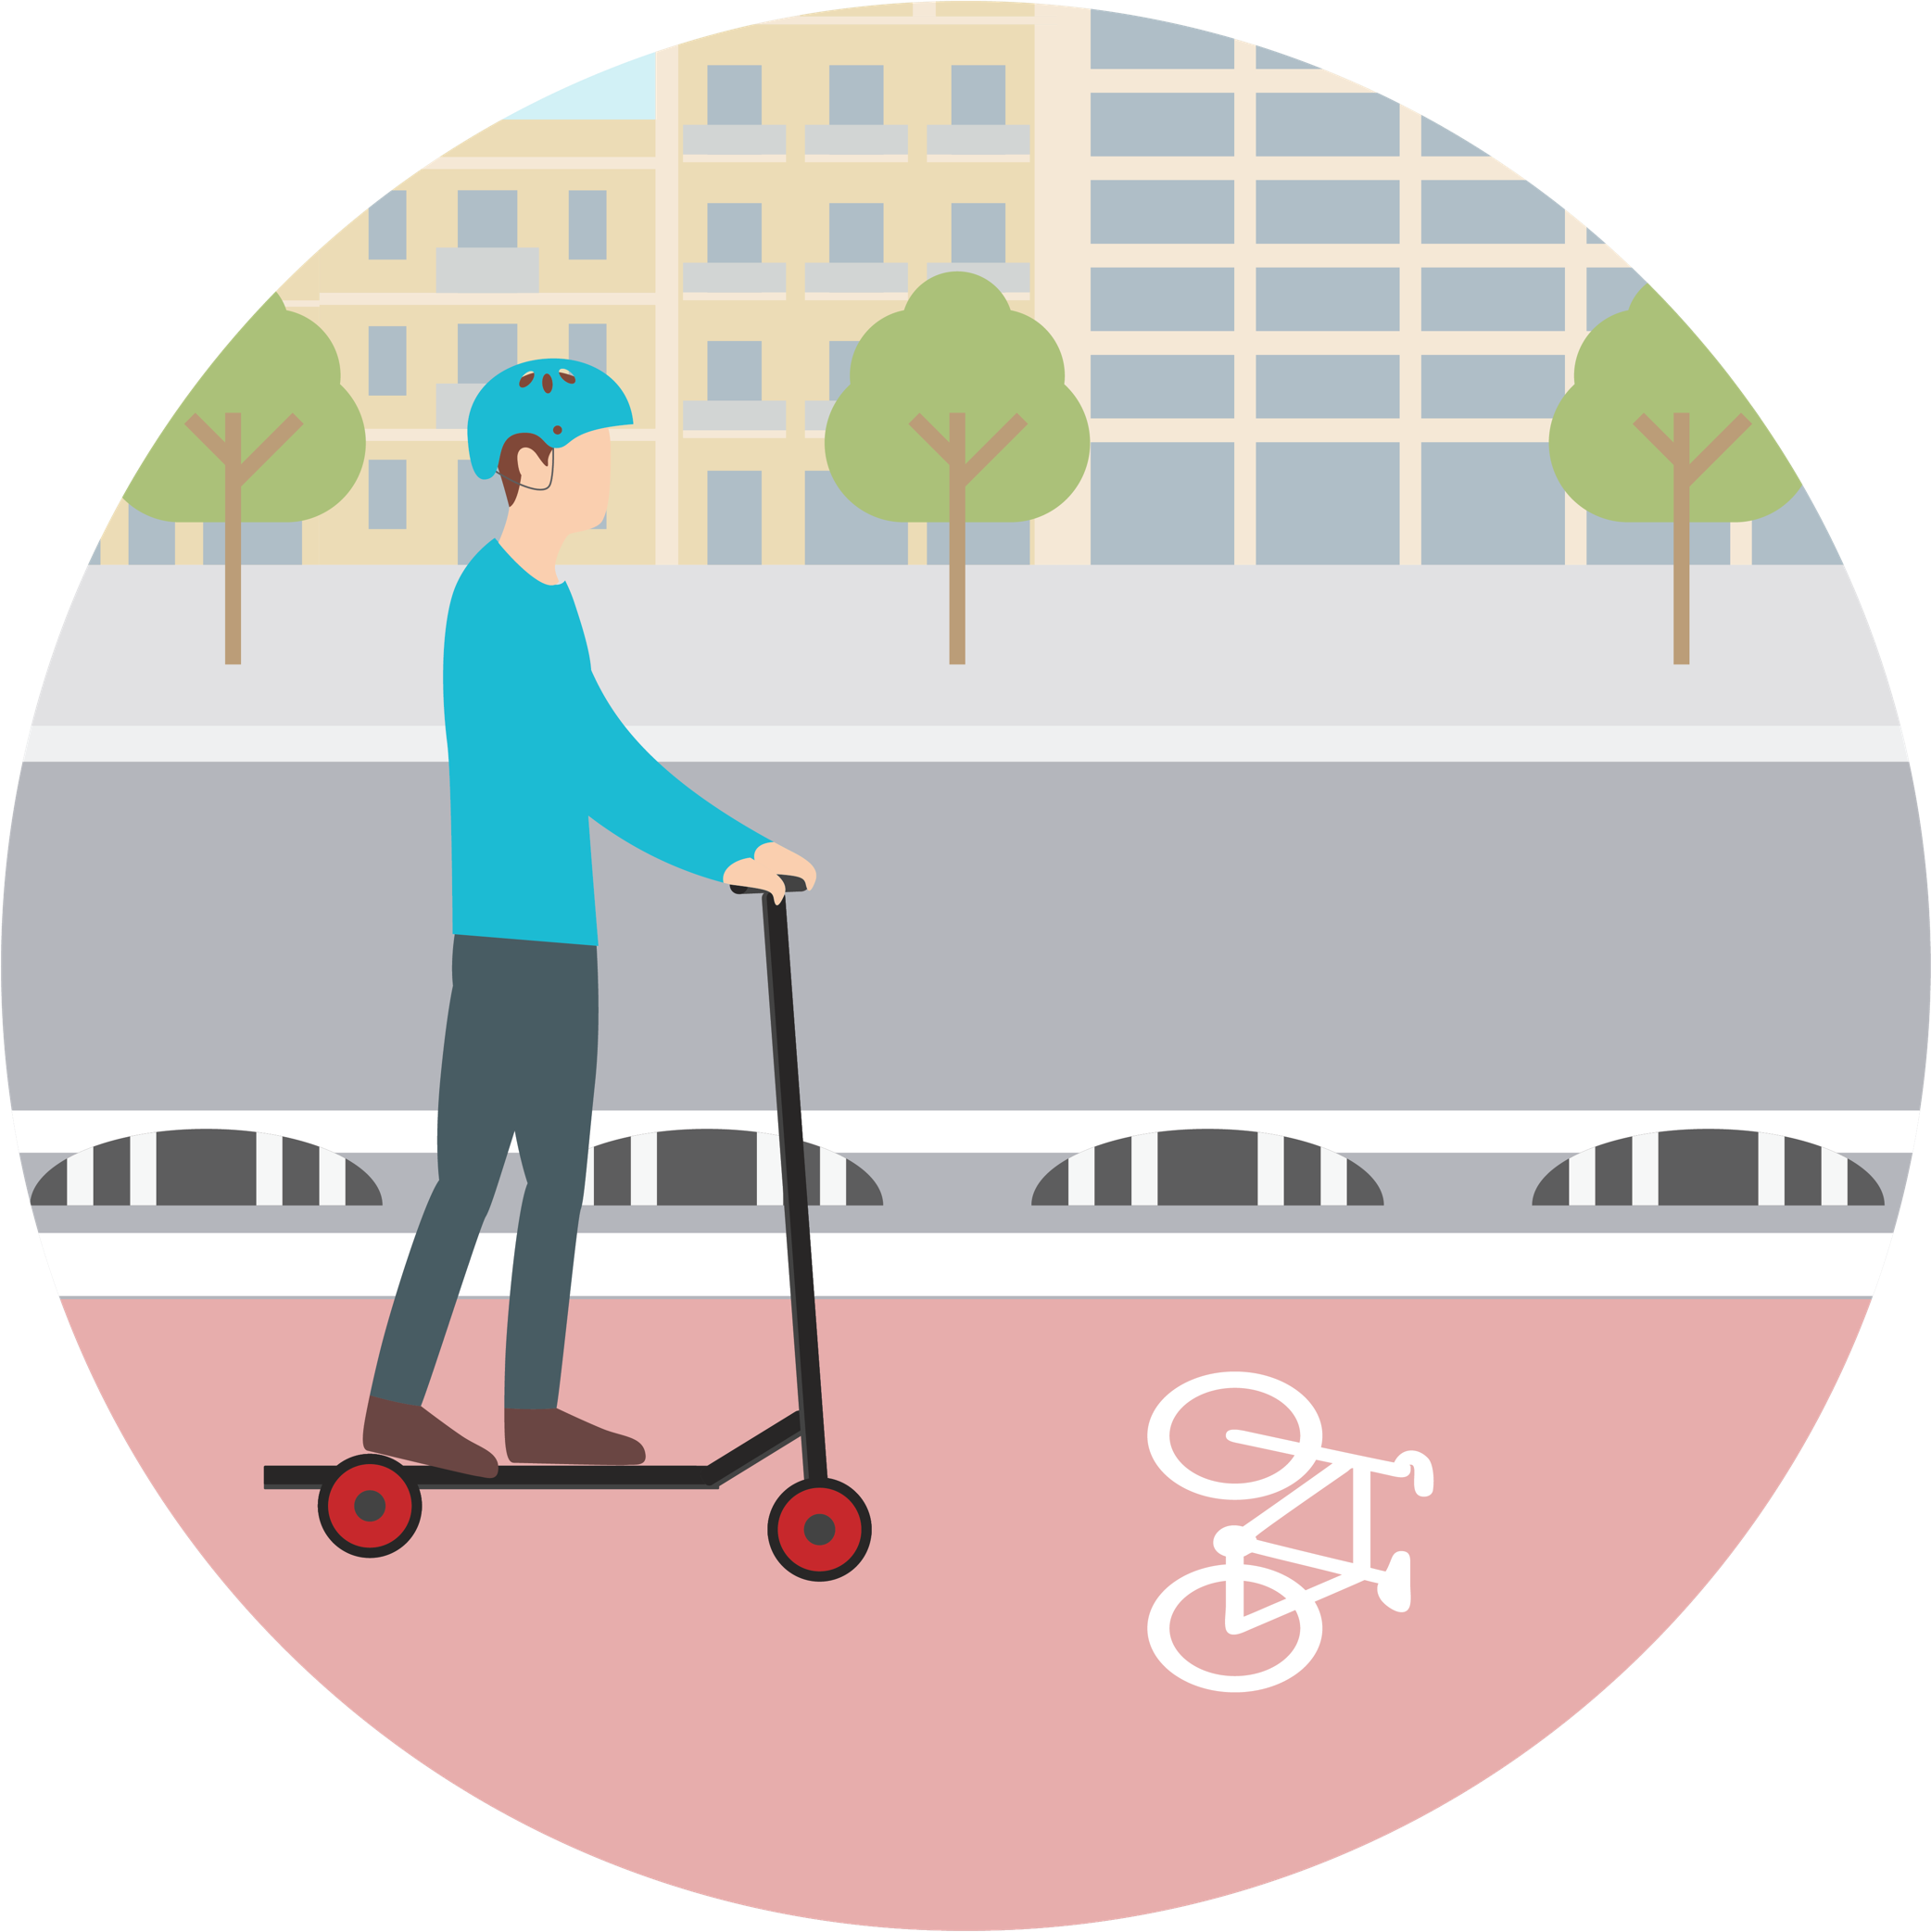 Can I ride electric scooters on the bike lanes in Barcelona?